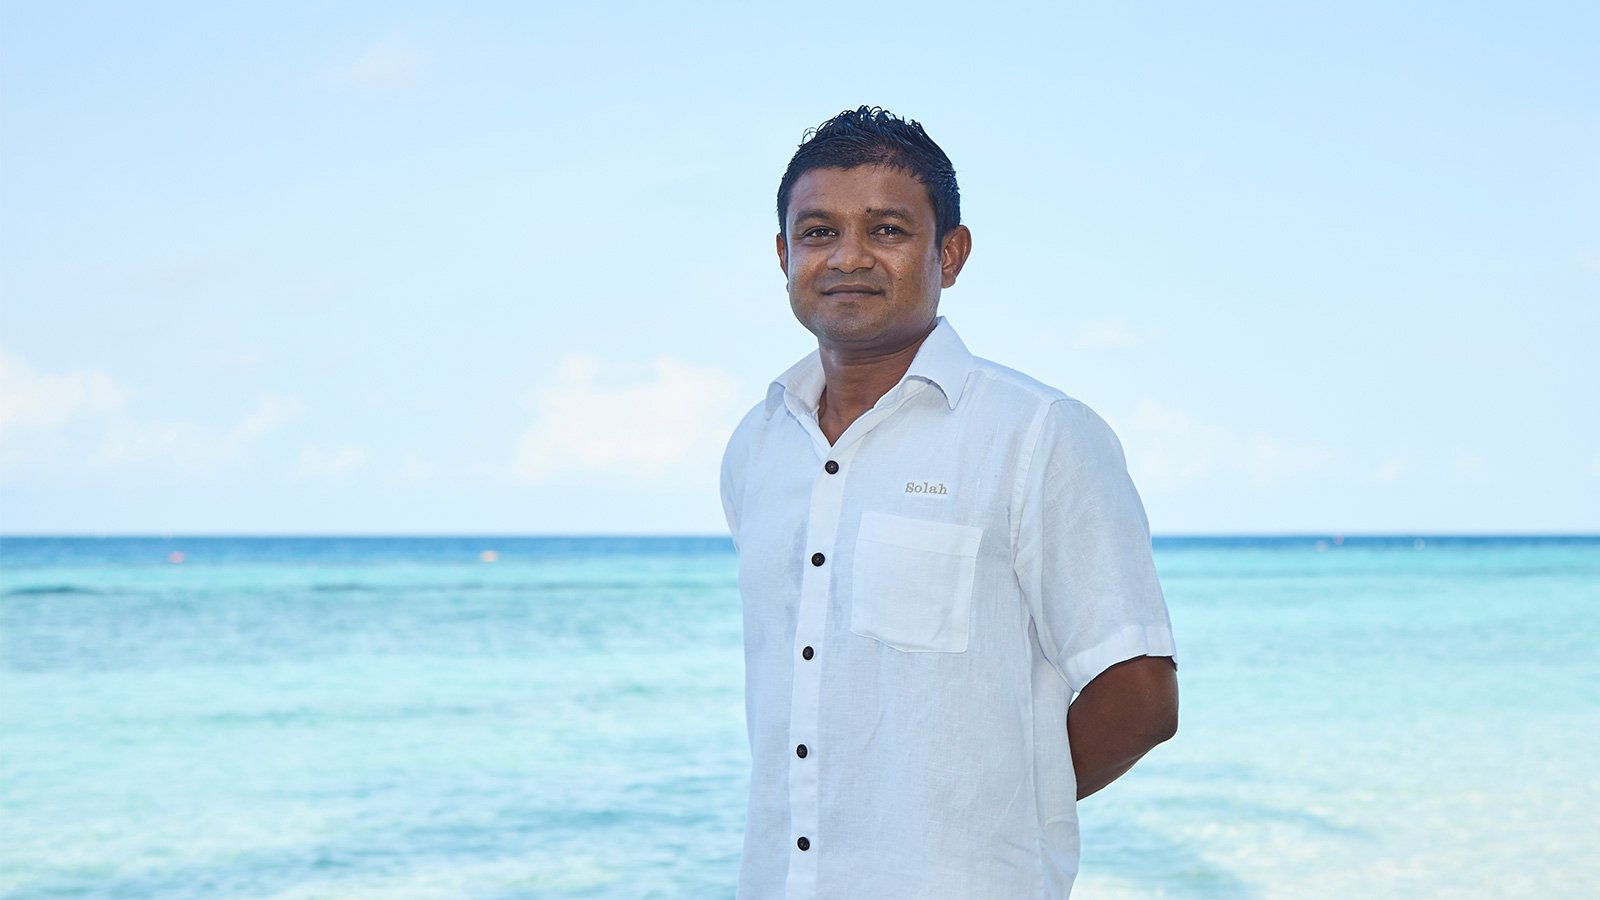 Solah Resort Manager Komandoo Maldives